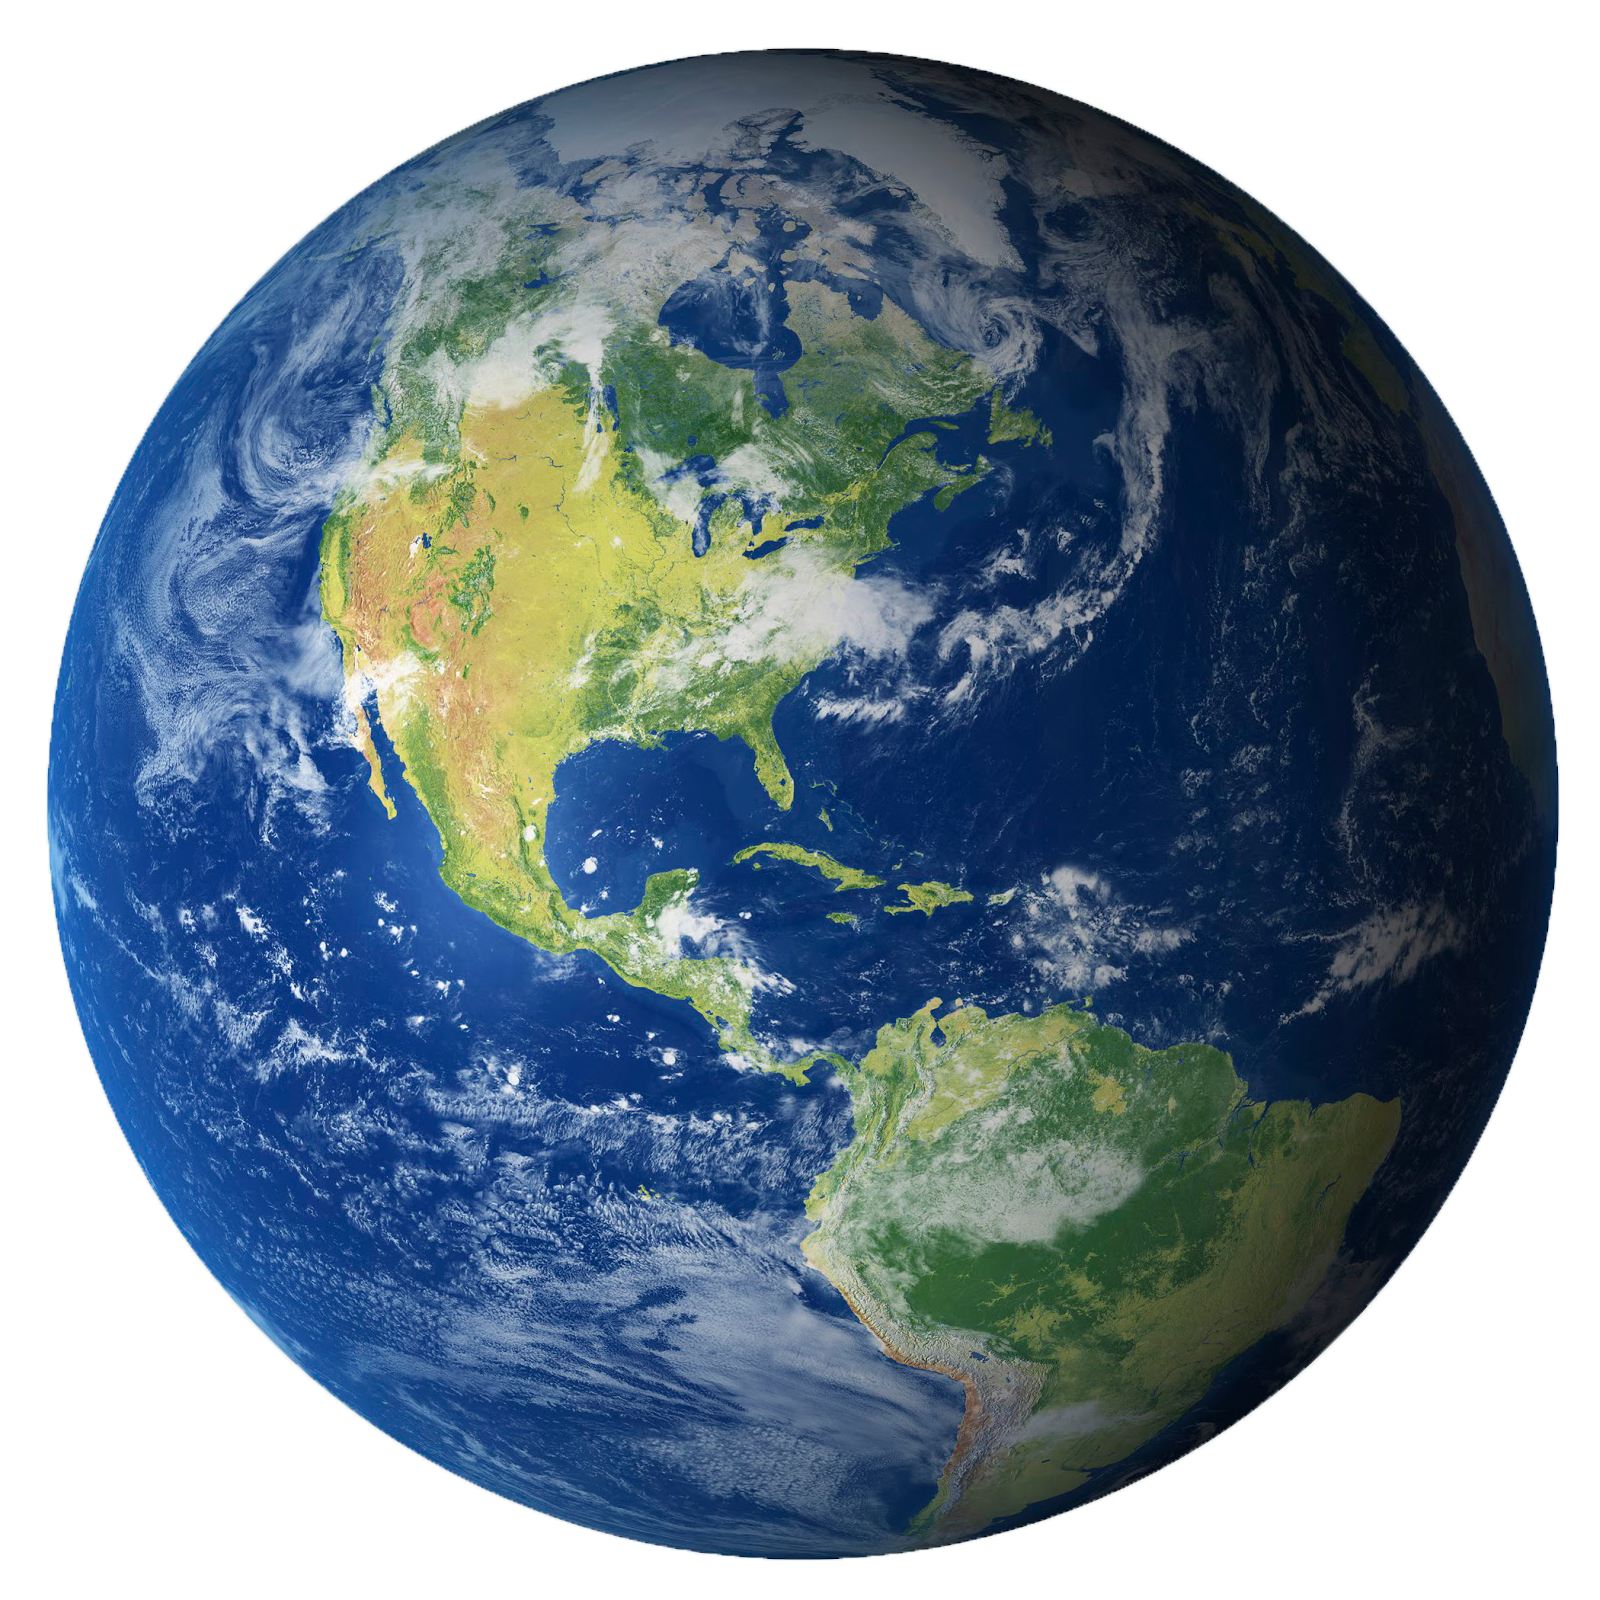 Earth PNG Image Earth images, Earth, Image